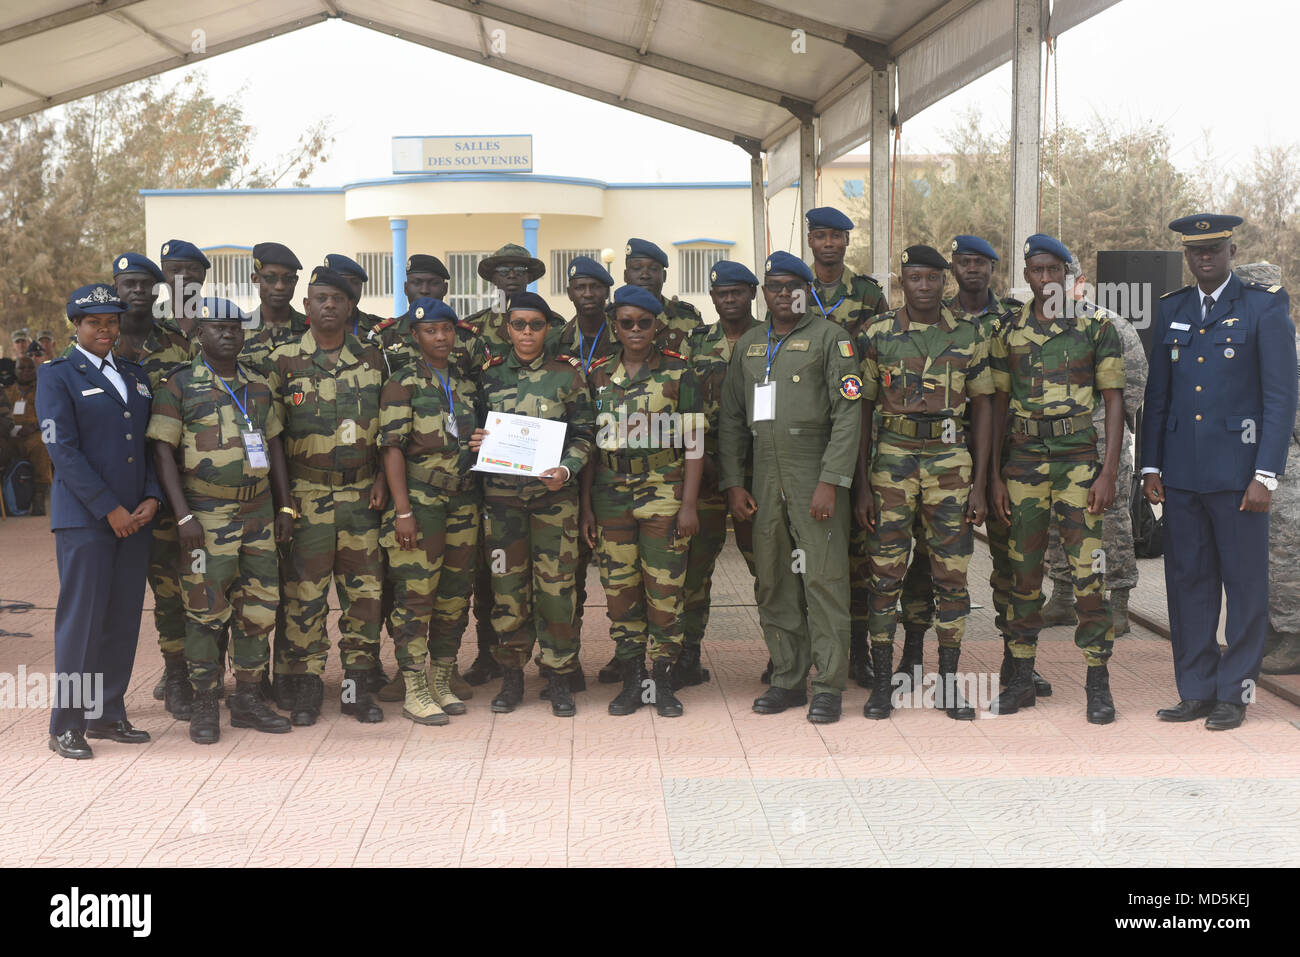 African Partnership Flight participants from Senegal pose for a photo after the closing ceremony for APF at Captain Andalla Cissé Air Base, Senegal, March 23, 2018. The marks the end of the 12th APF held since the program began in 2012, and the second co-hosted by Senegal. (U.S. Air Force photo by Airman 1st Class Eli Chevalier)  (U.S. Air Force photo by Airman 1st Class Eli Chevalier) - Stock Image